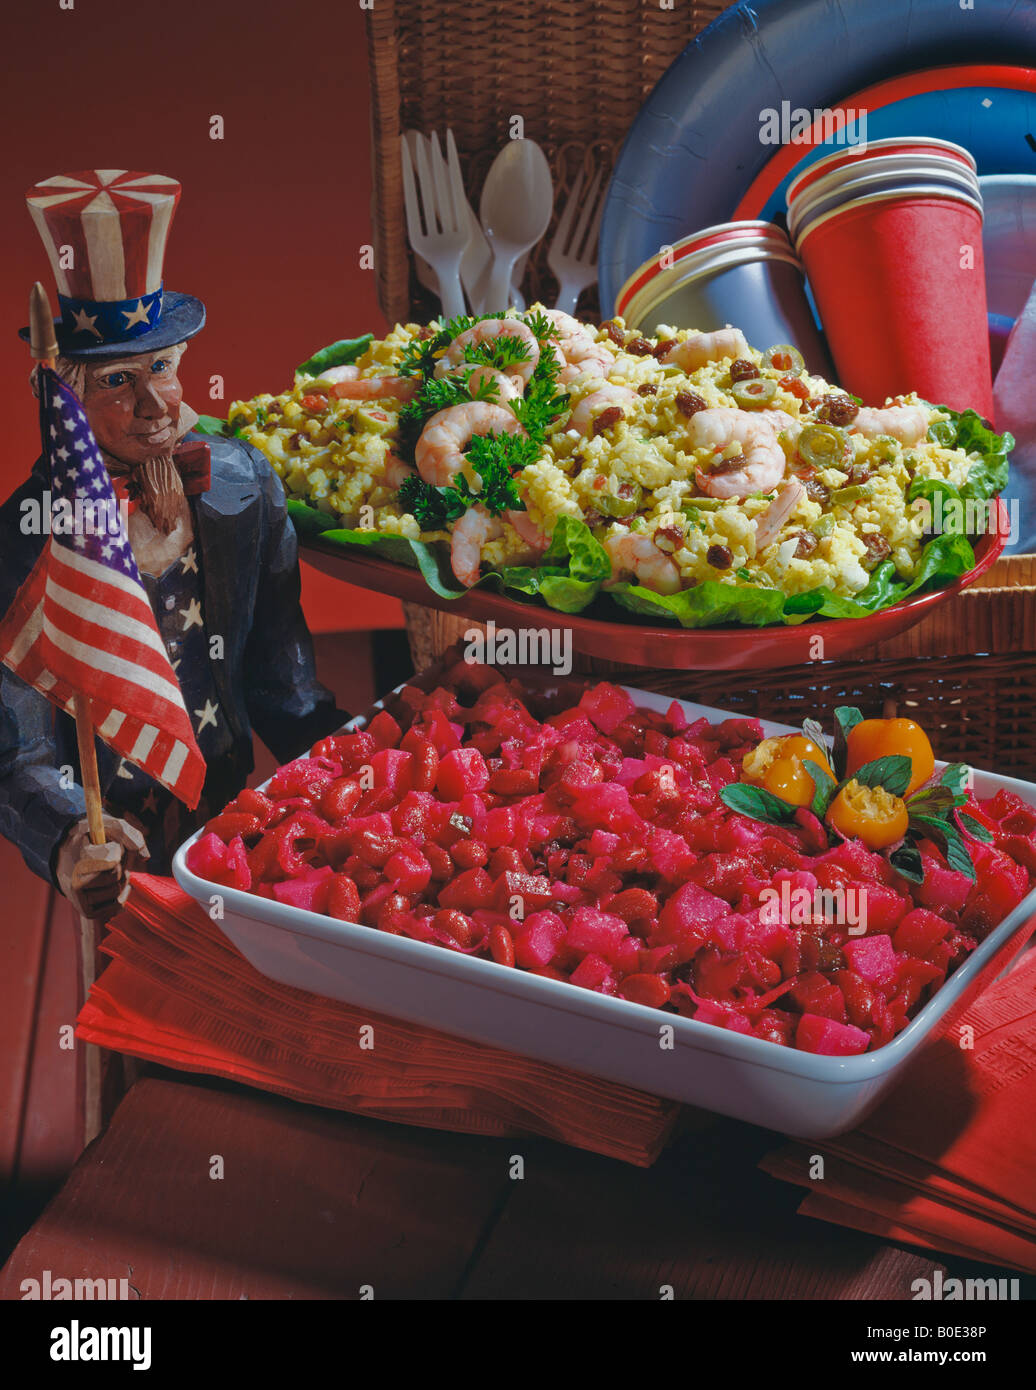 Country Kitchen Recipes Curried Rice Salad Russian Potato Picnic Holiday Celebration Atmosphere Flag Americana